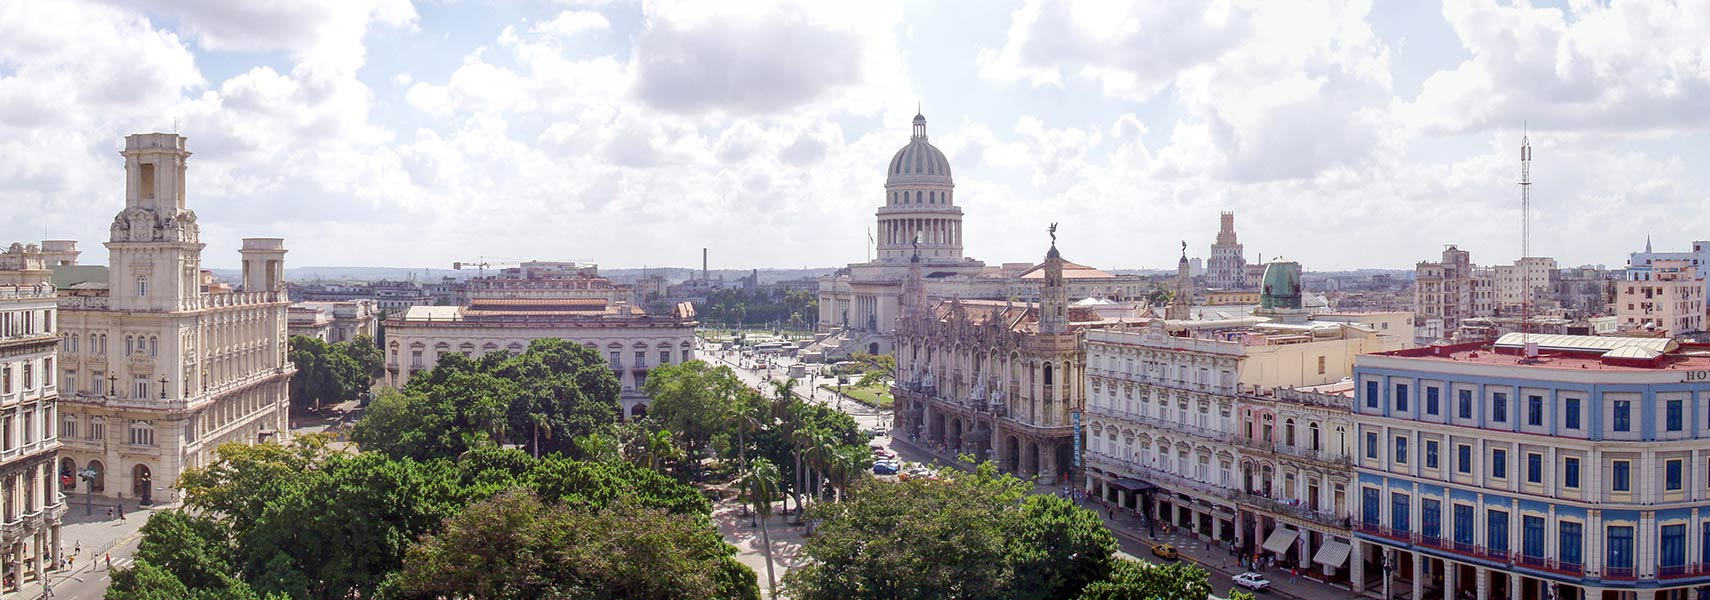 Old Havana with El Capitolio, capital city of Cuba